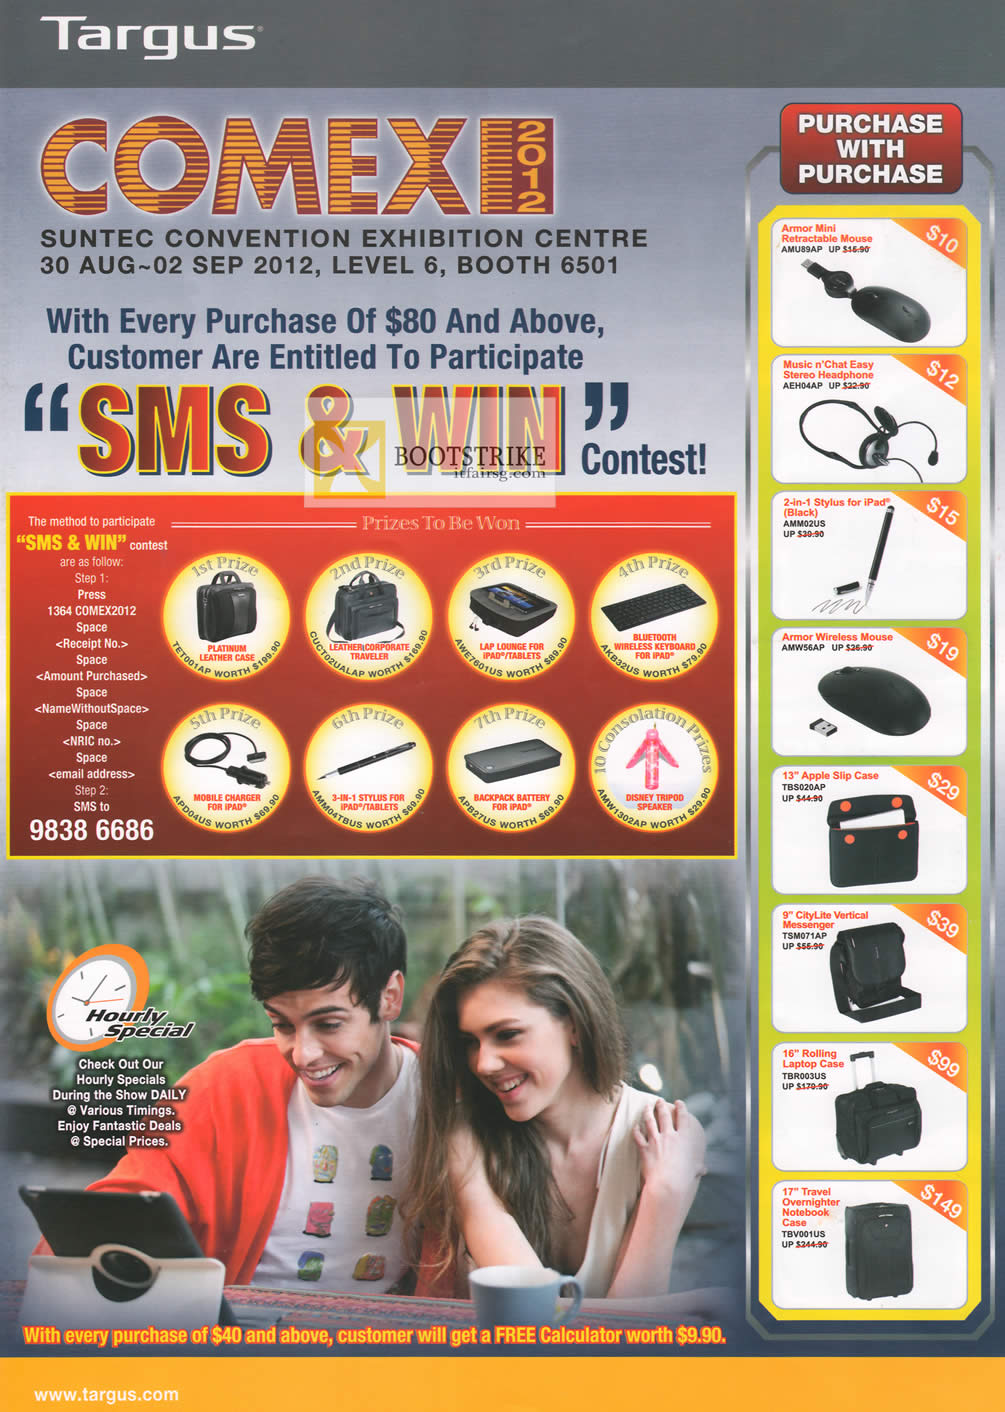 COMEX 2012 price list image brochure of Targus SMS And Win, Purchase With Purchase Specials